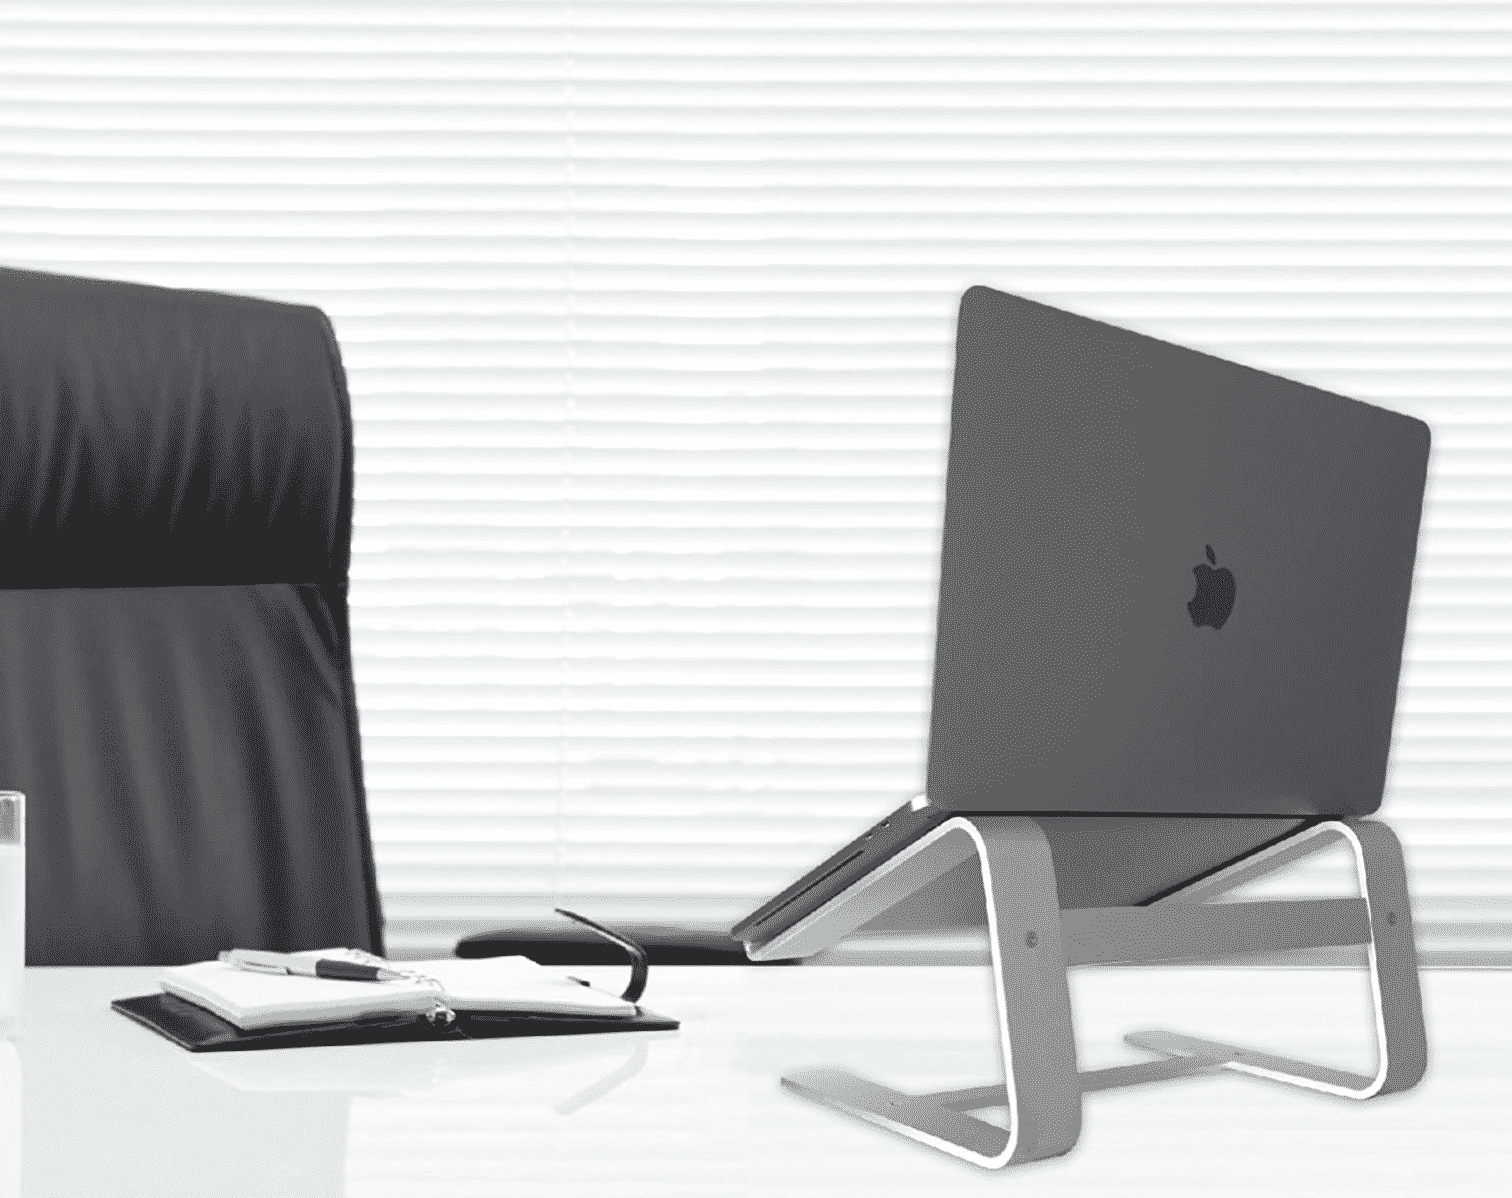 Macally Aluminum Laptop Stand for Desk